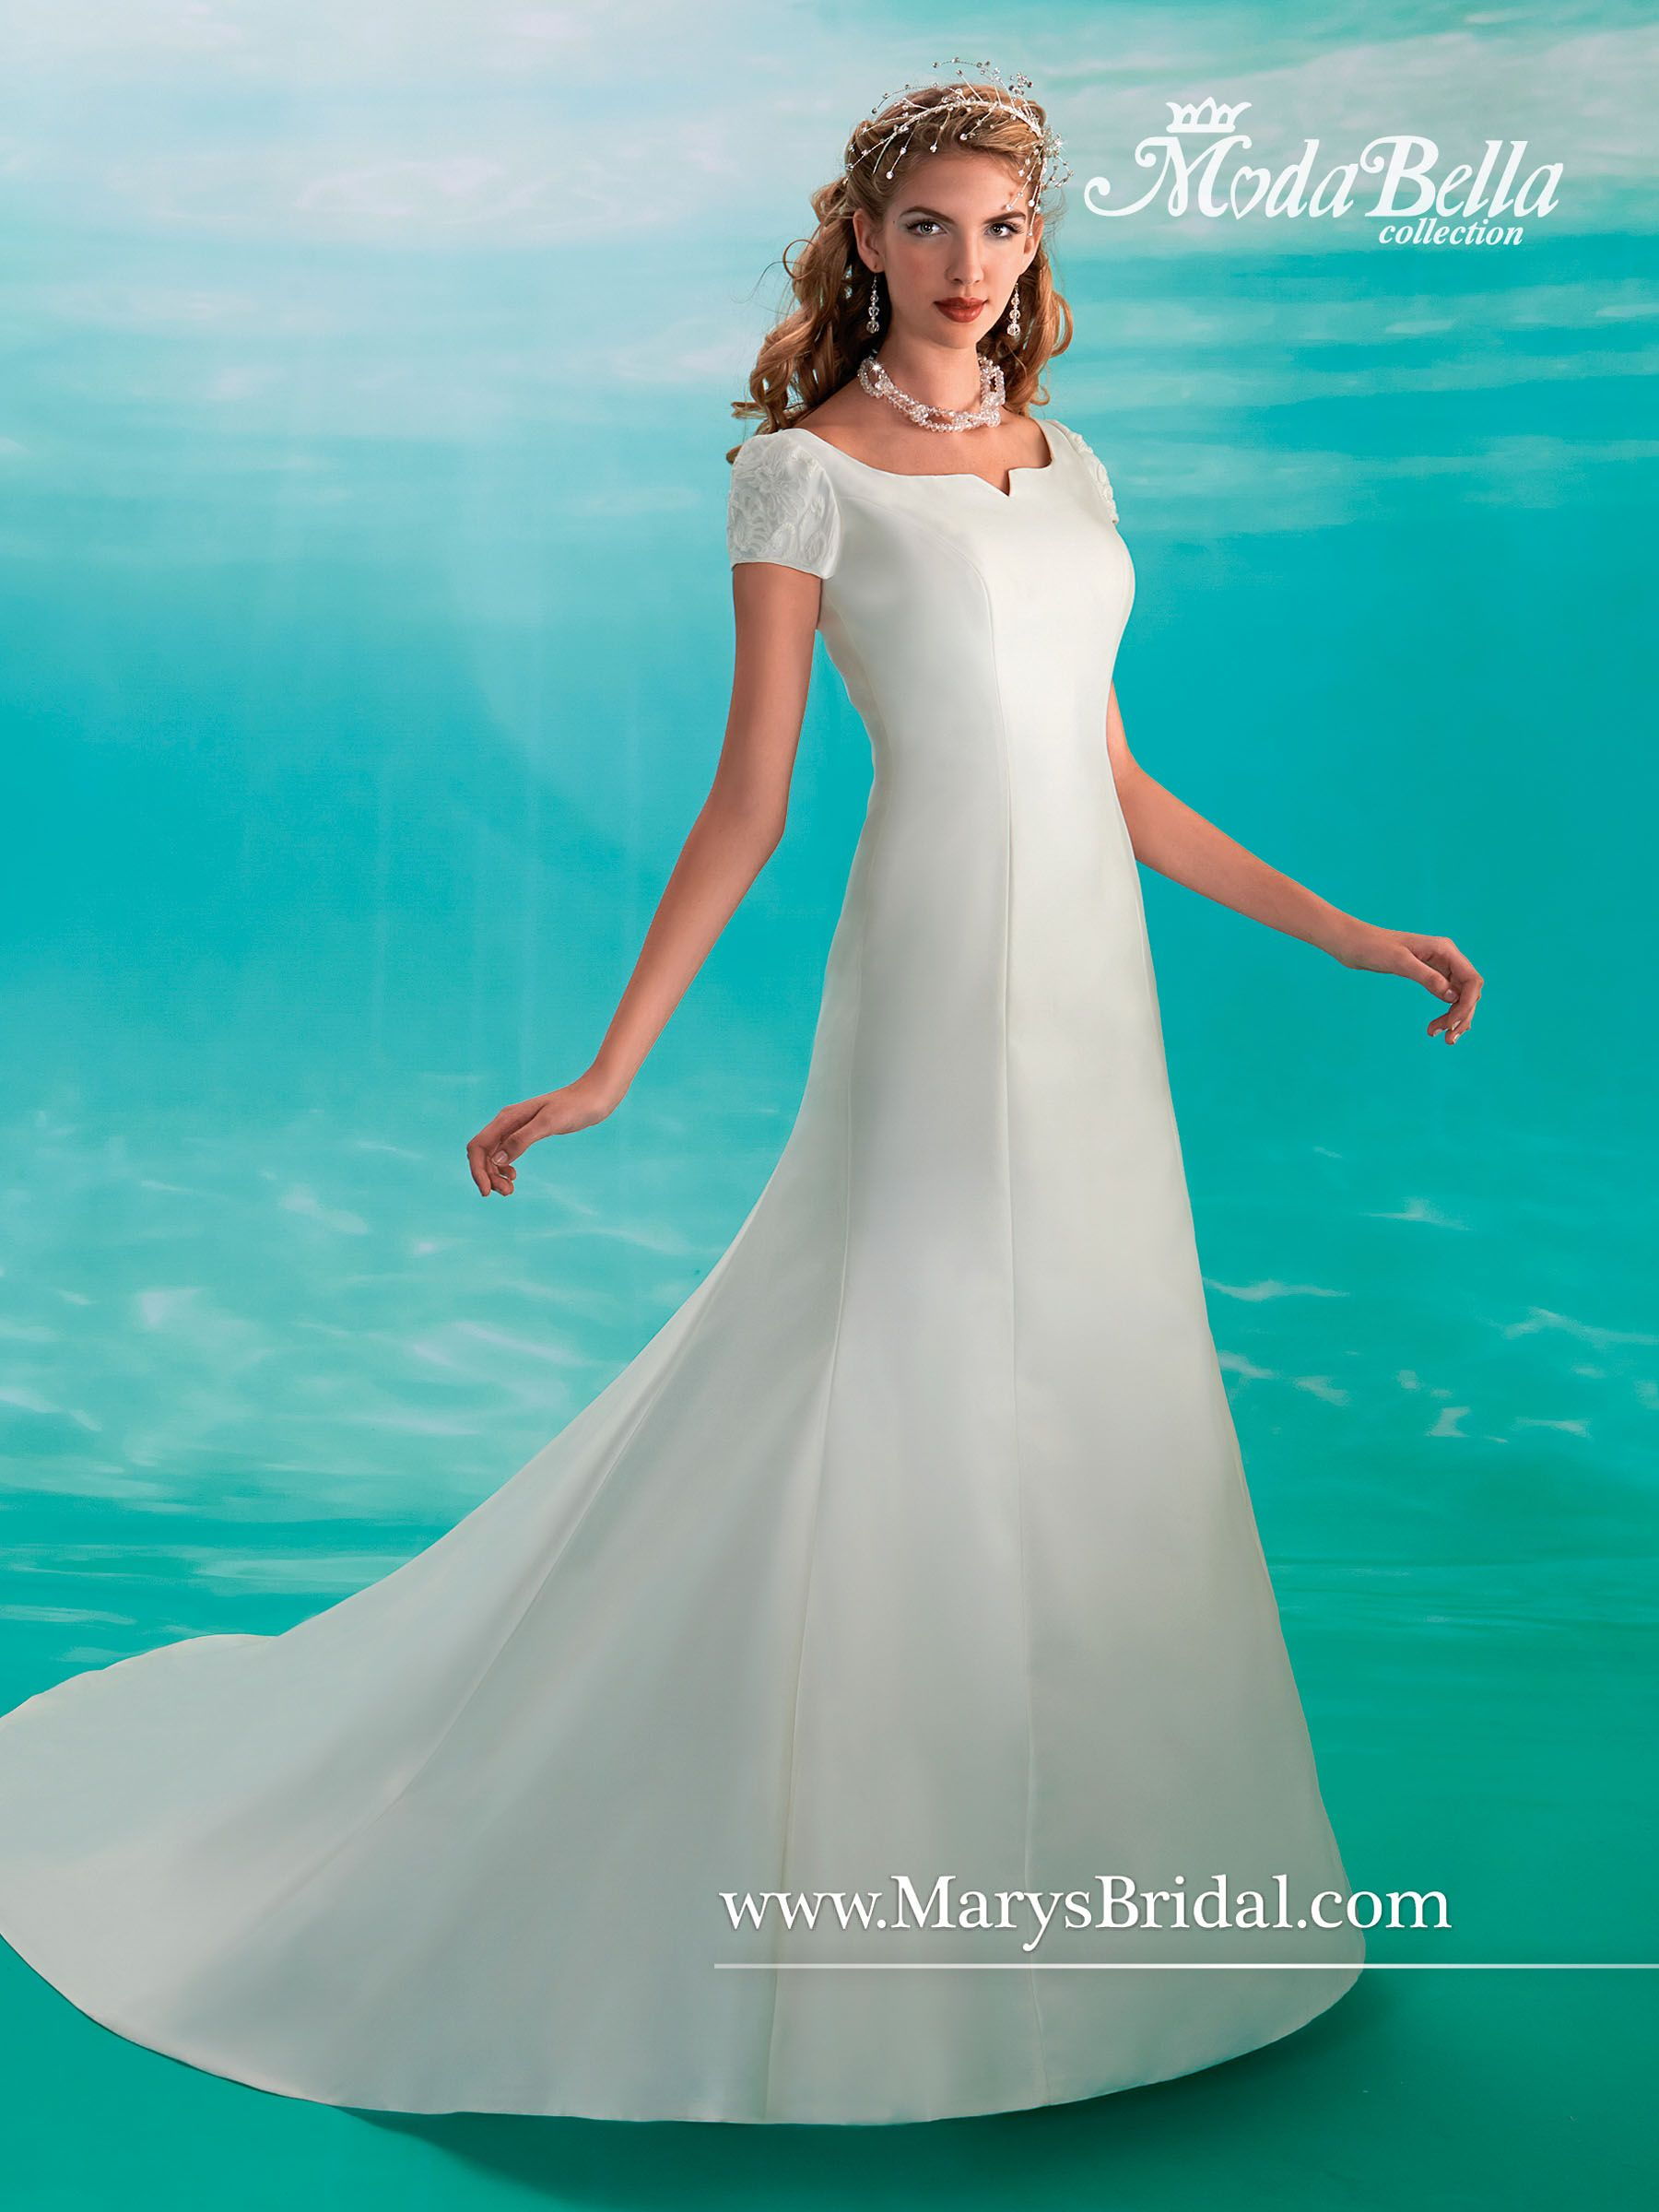 Mary\'s Bridal : Moda Bella : S15-3Y364 | my dream wedding dress ...